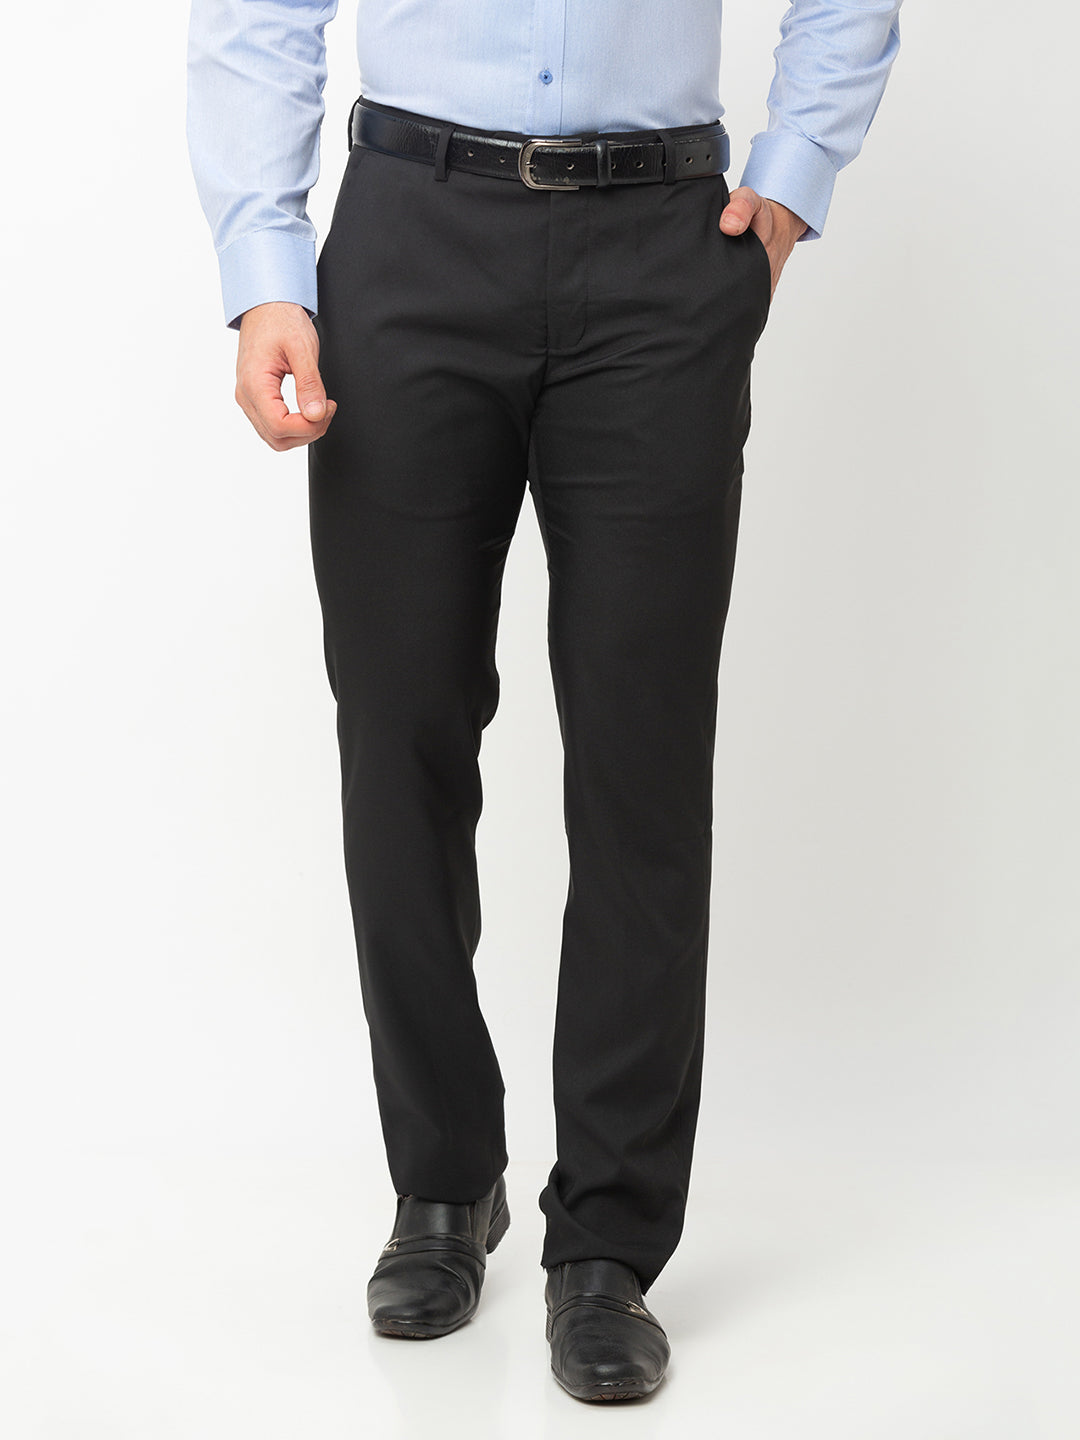 Globus Black Solid Trousers-1